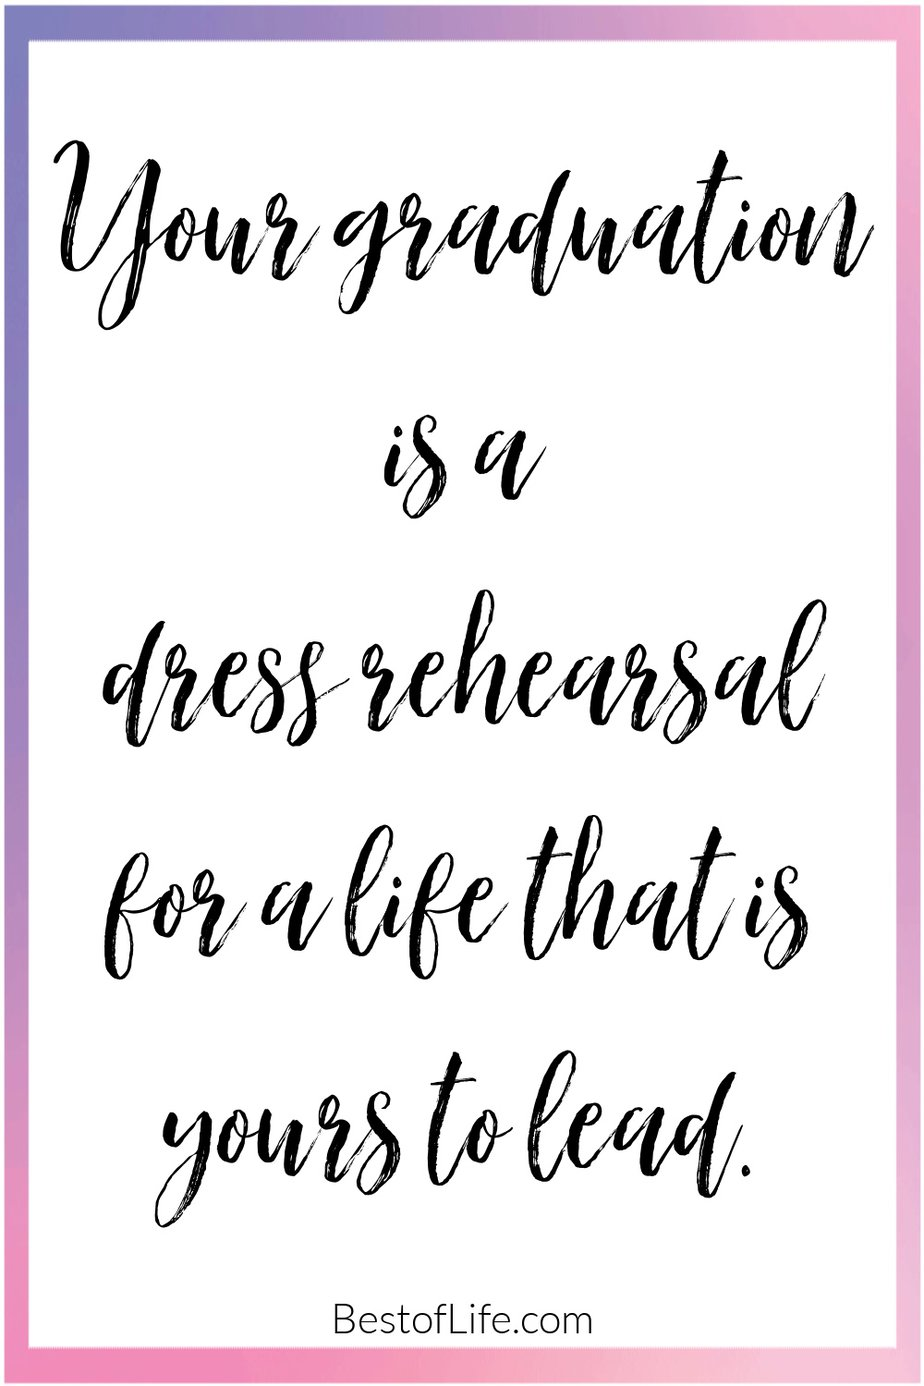 Graduation Quotes from Parents Your Graduation is a Dress Rehearsal for a Life That is Your to Lead